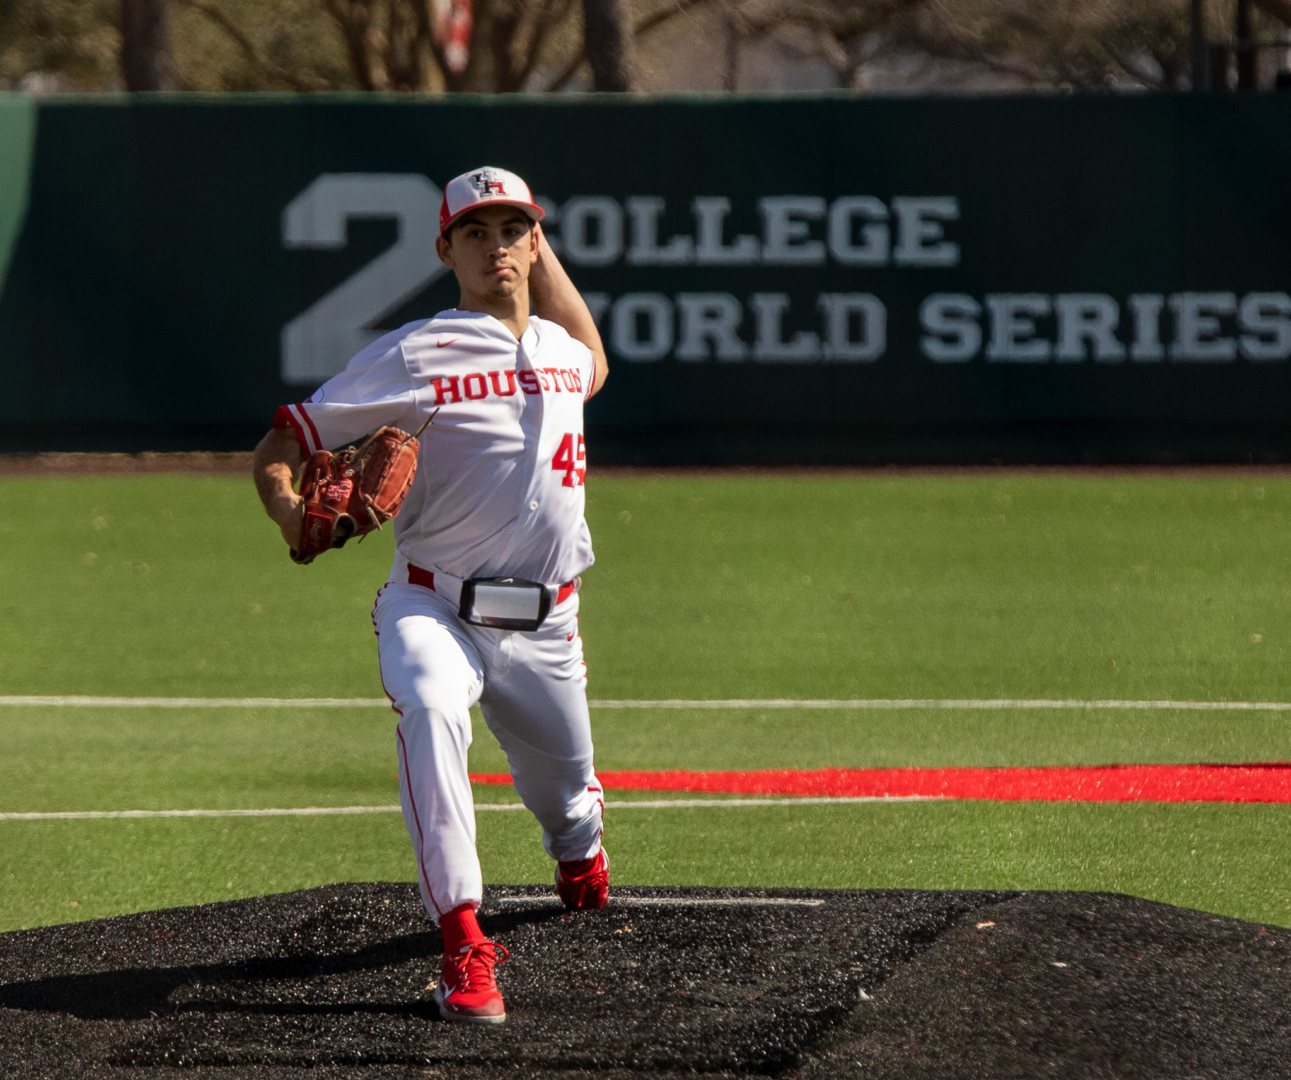 Junior left-hander Robert Gasser has started off the season with a 1.80 ERA and struck out 10 in his first two starts of the 2021 UH baseball season | Andy Yanez/The Cougar